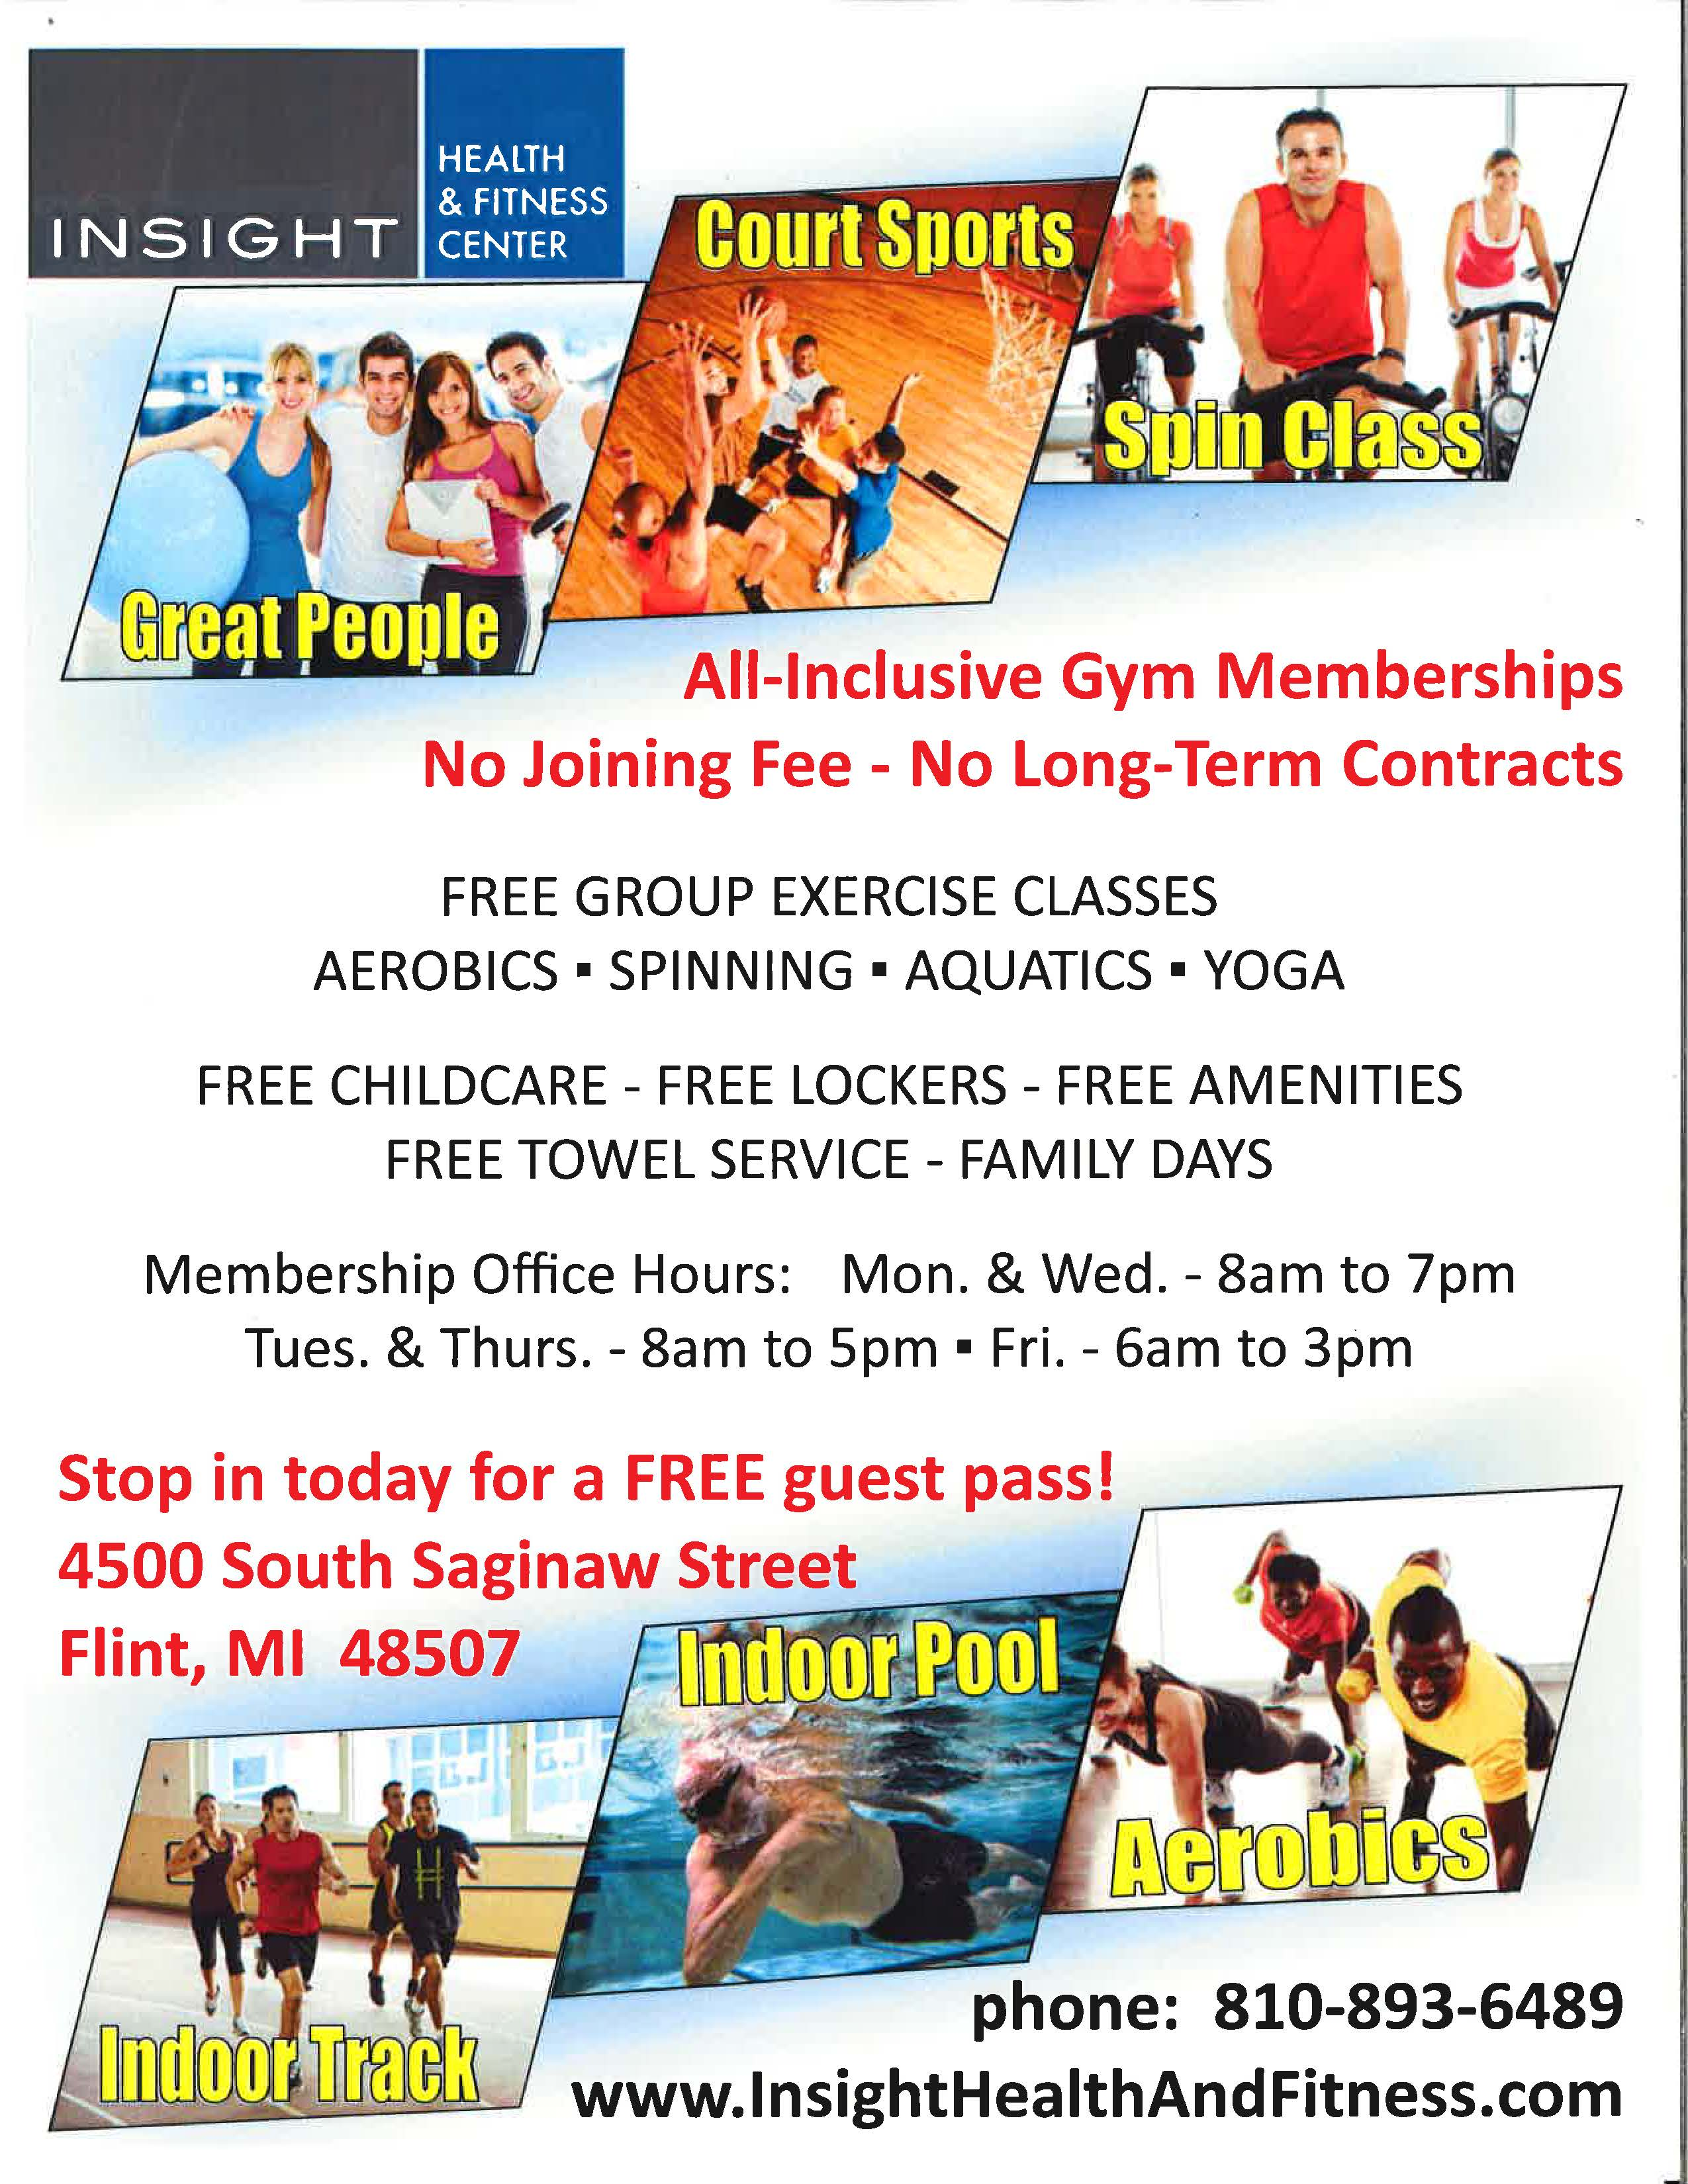 Insight Health & Fitness Center Advertisement -